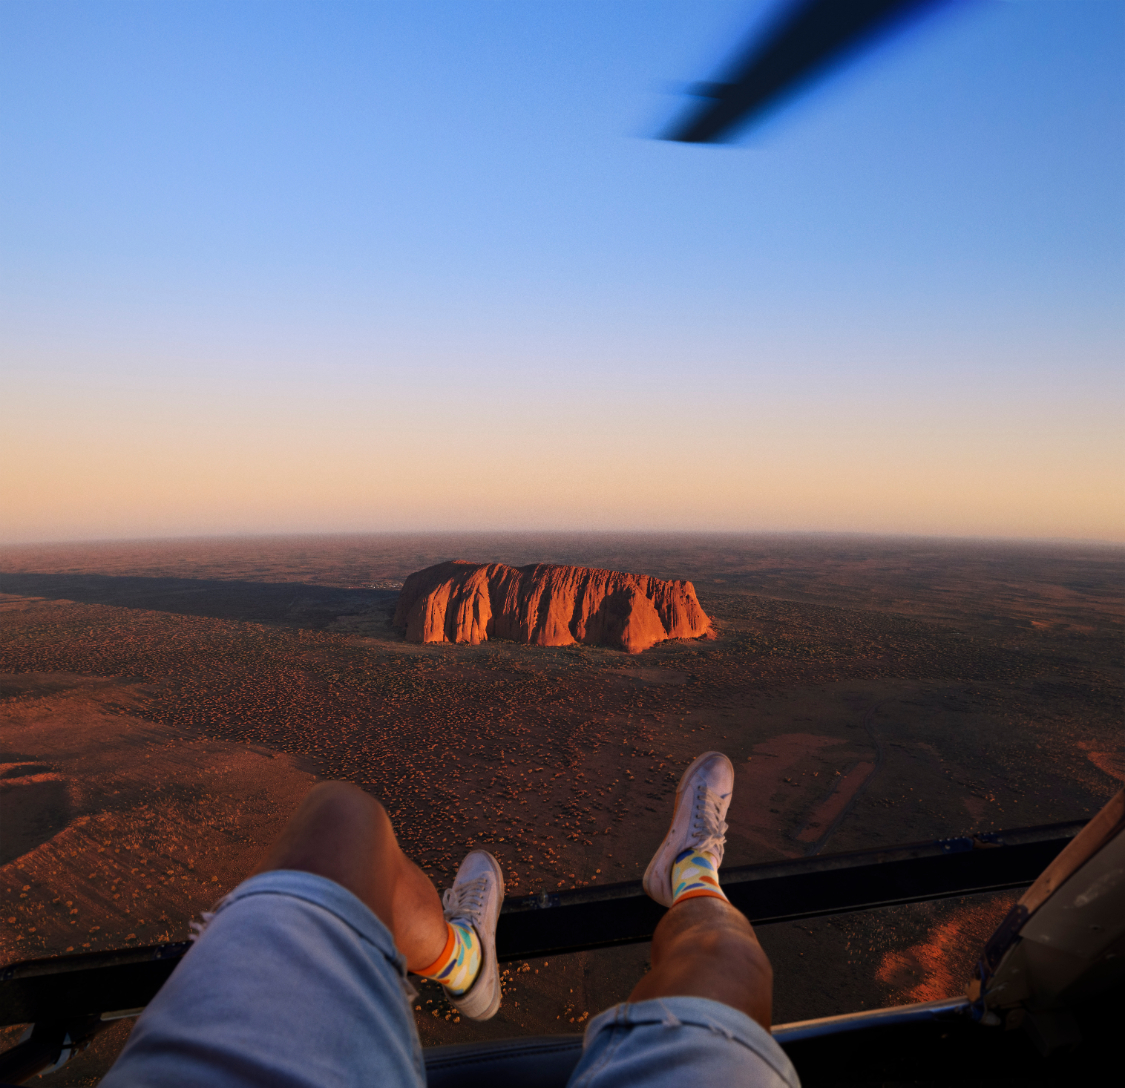 Man riding in a helicopter with his legs hanging out the side